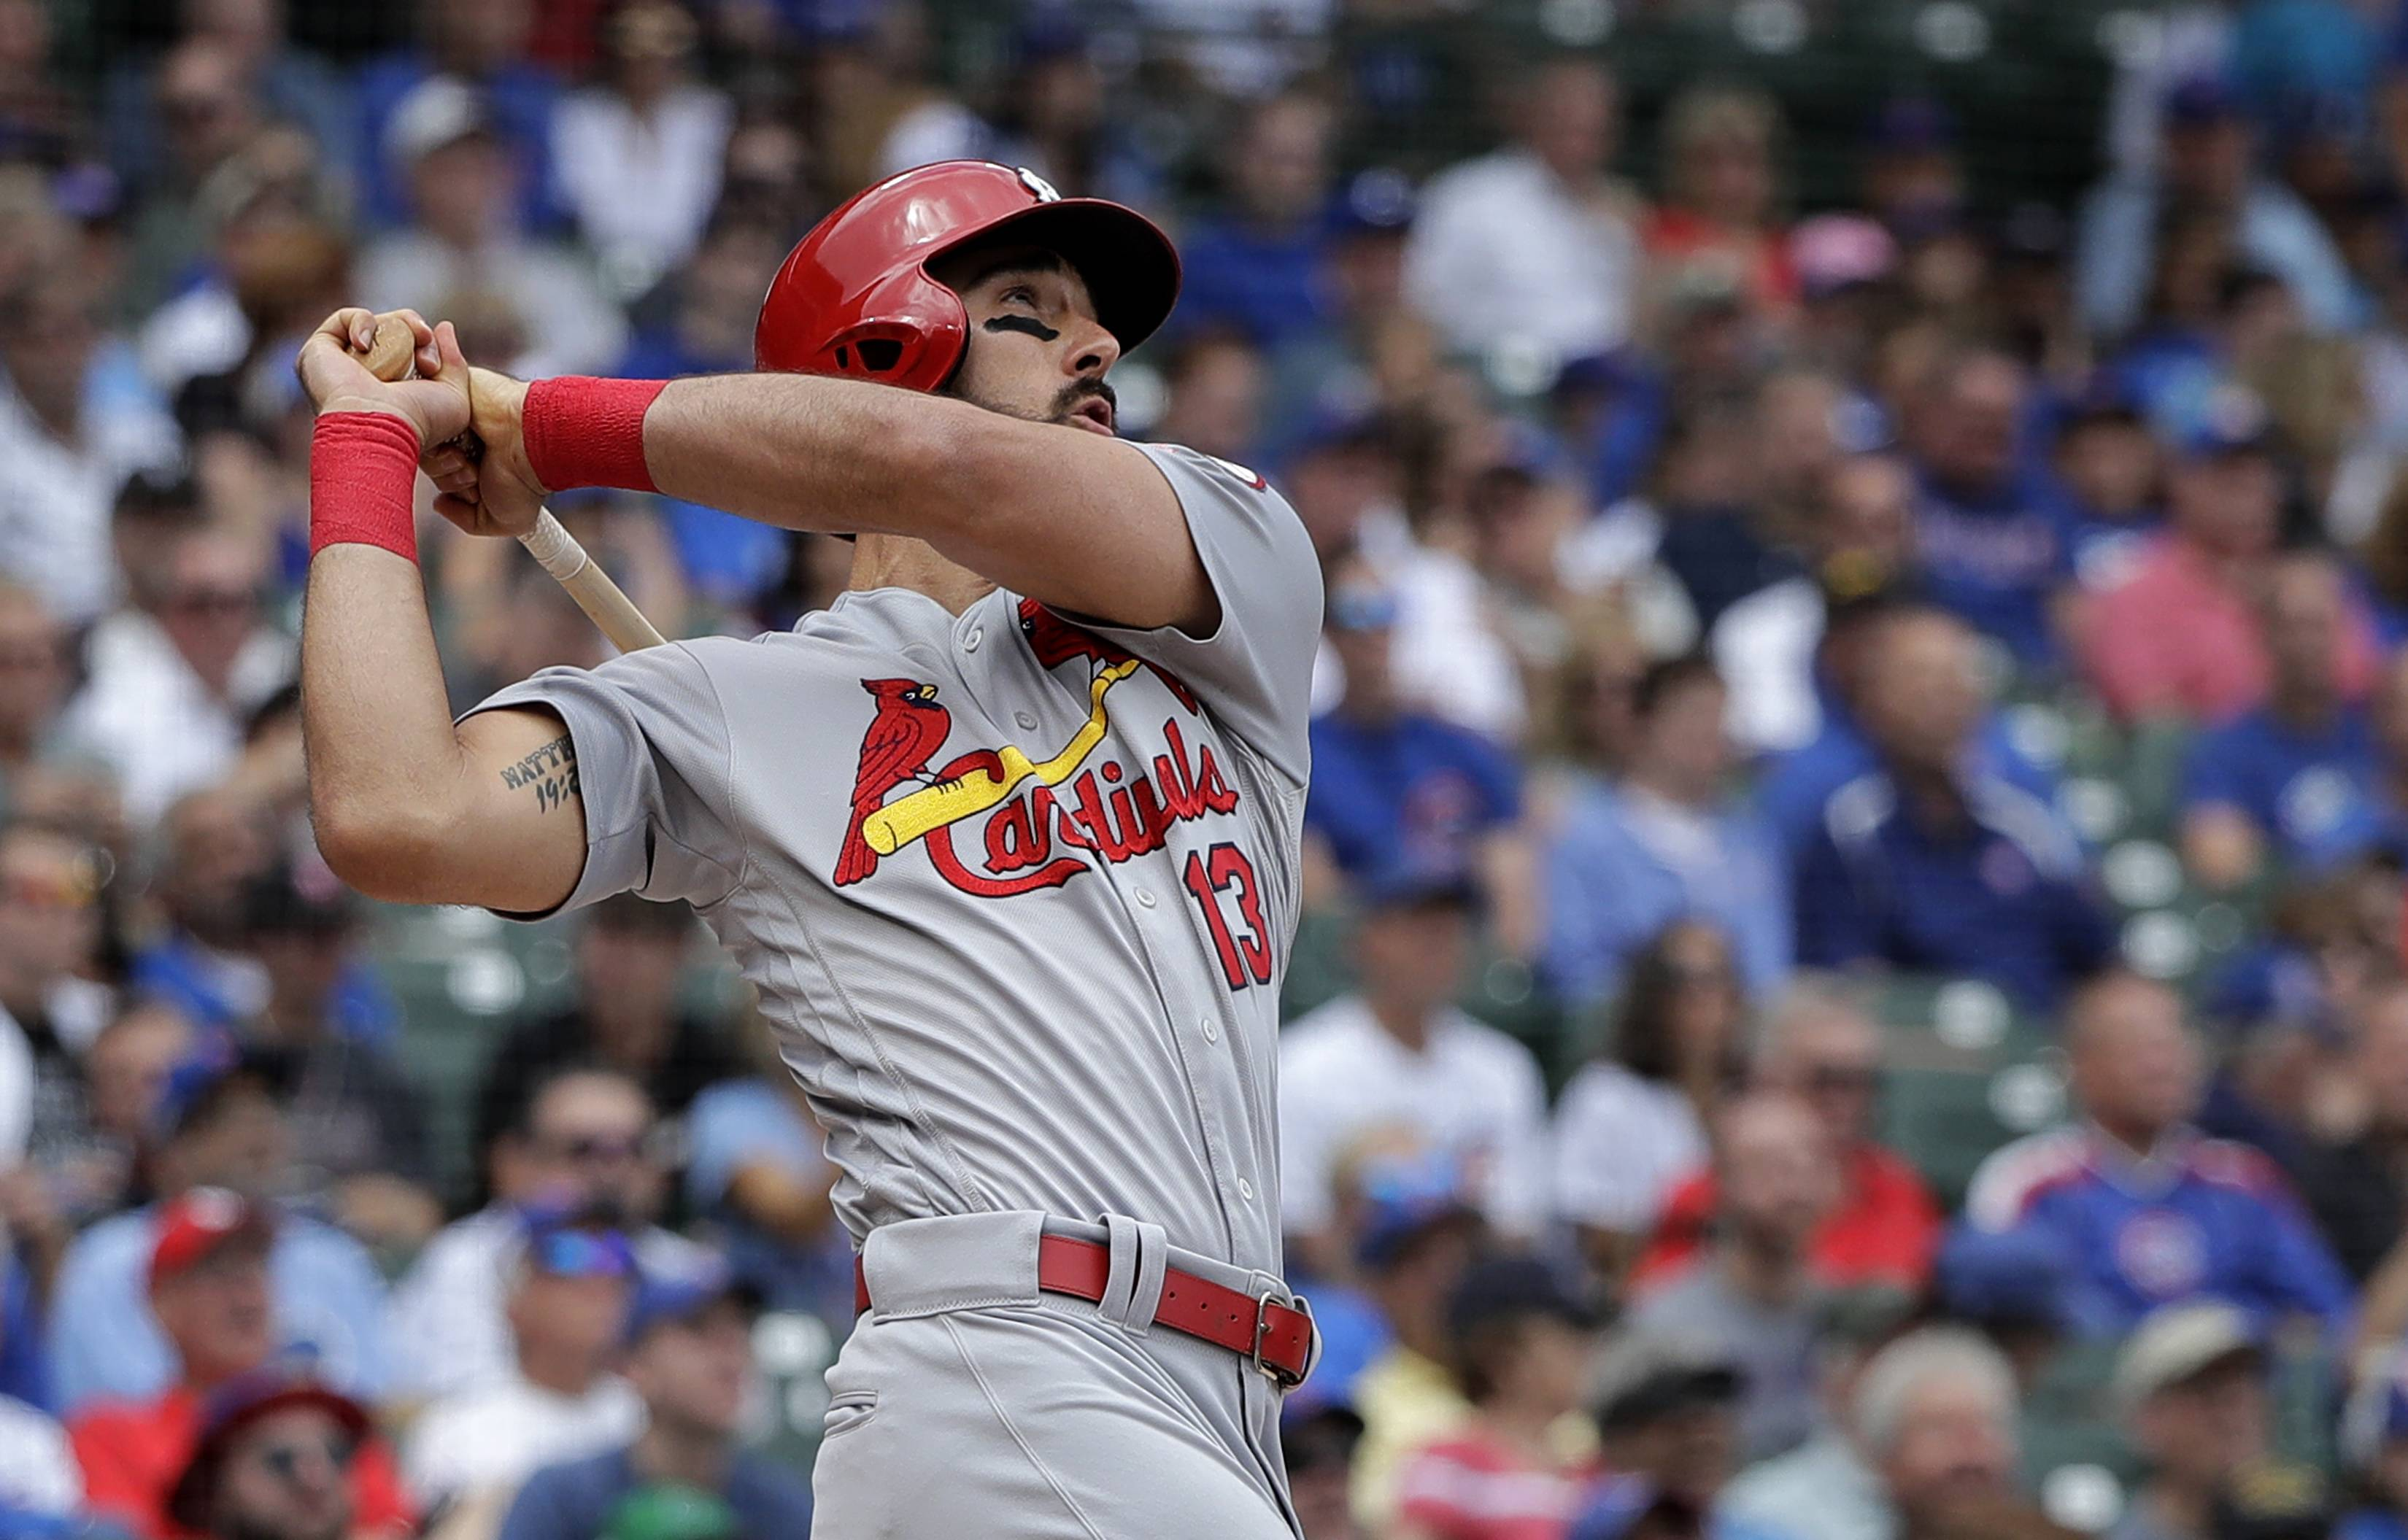 The St. Louis Cardinals got 3 home runs and 2 doubles from Matt Carpenter Friday in a 18-5 rout of the Chicago Cubs at Wrigley Field.